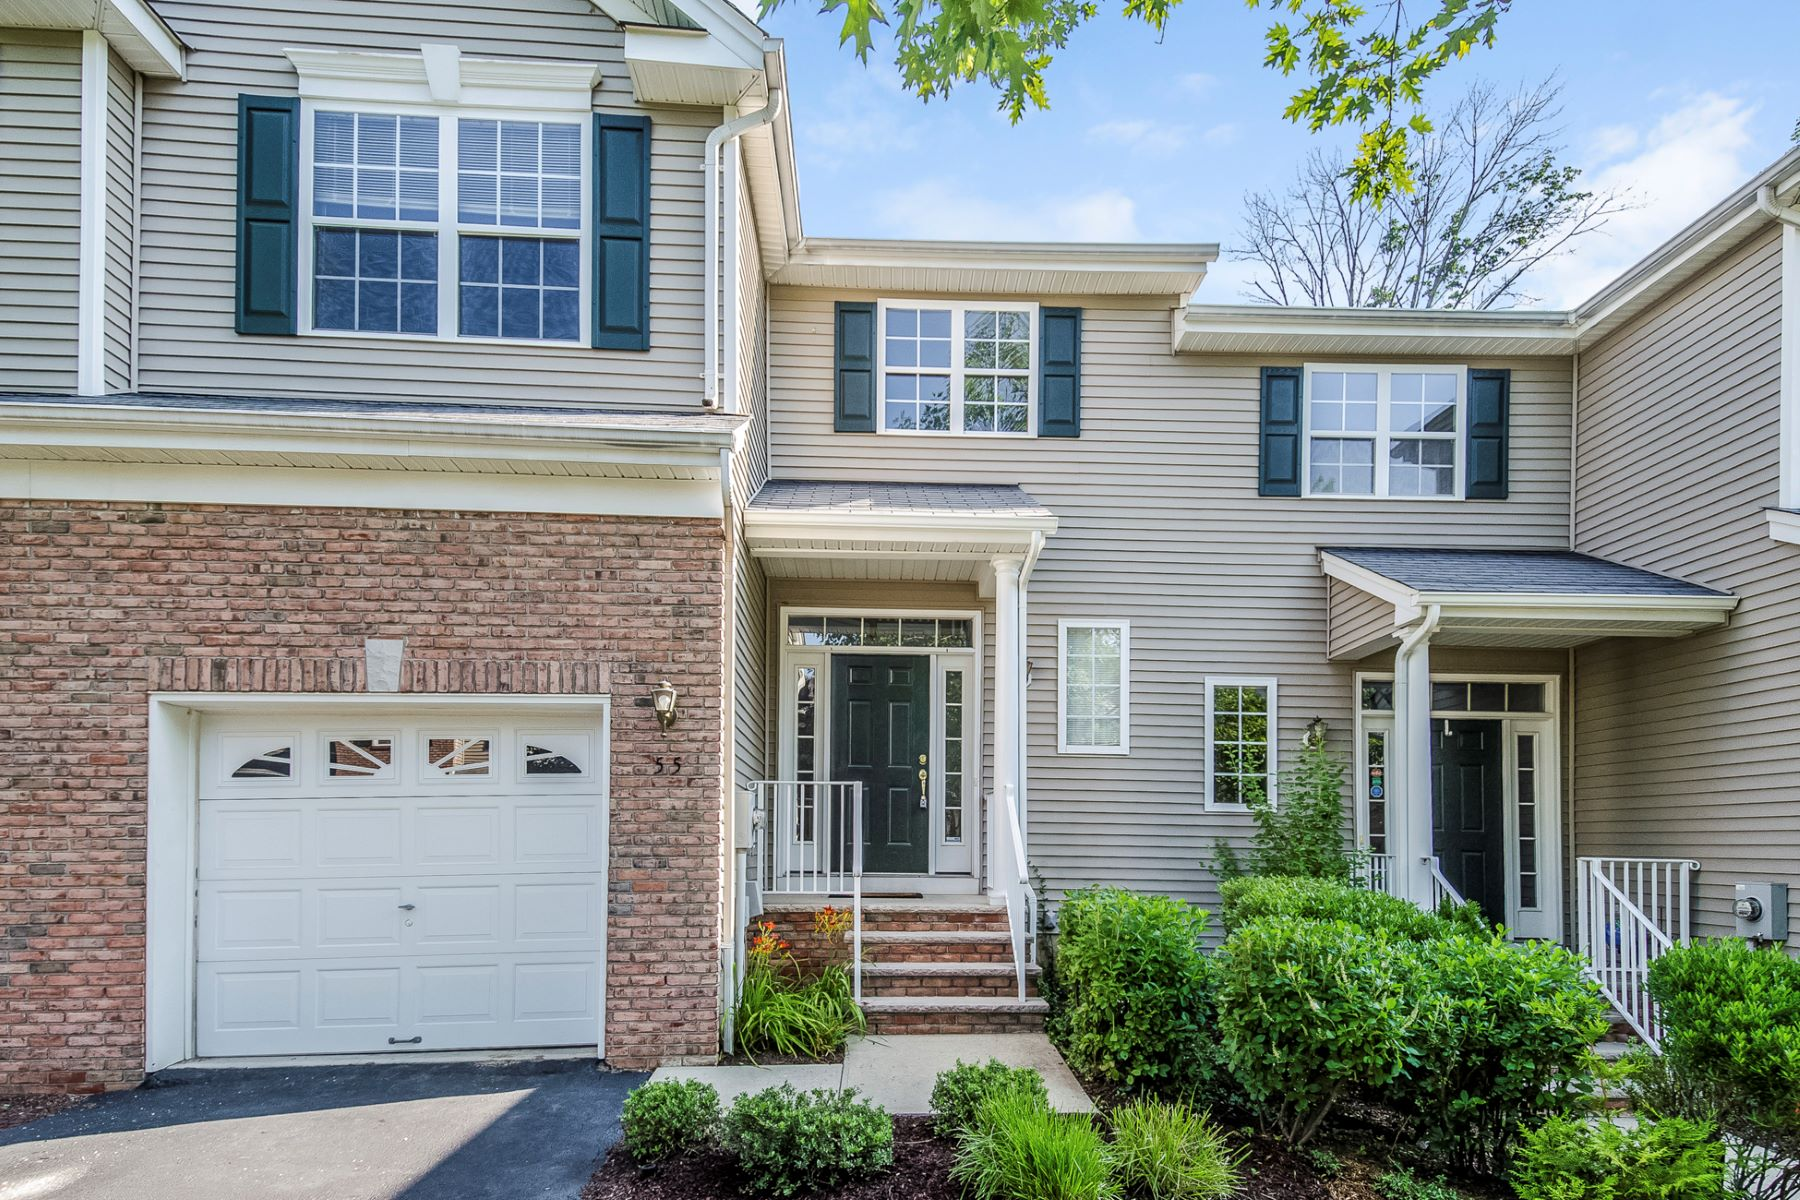 Casa unifamiliar adosada (Townhouse) por un Venta en Beautiful and Spacious Devon Model 55 Jackson Avenue, Princeton, Nueva Jersey 08540 Estados UnidosEn/Alrededor: Montgomery Township